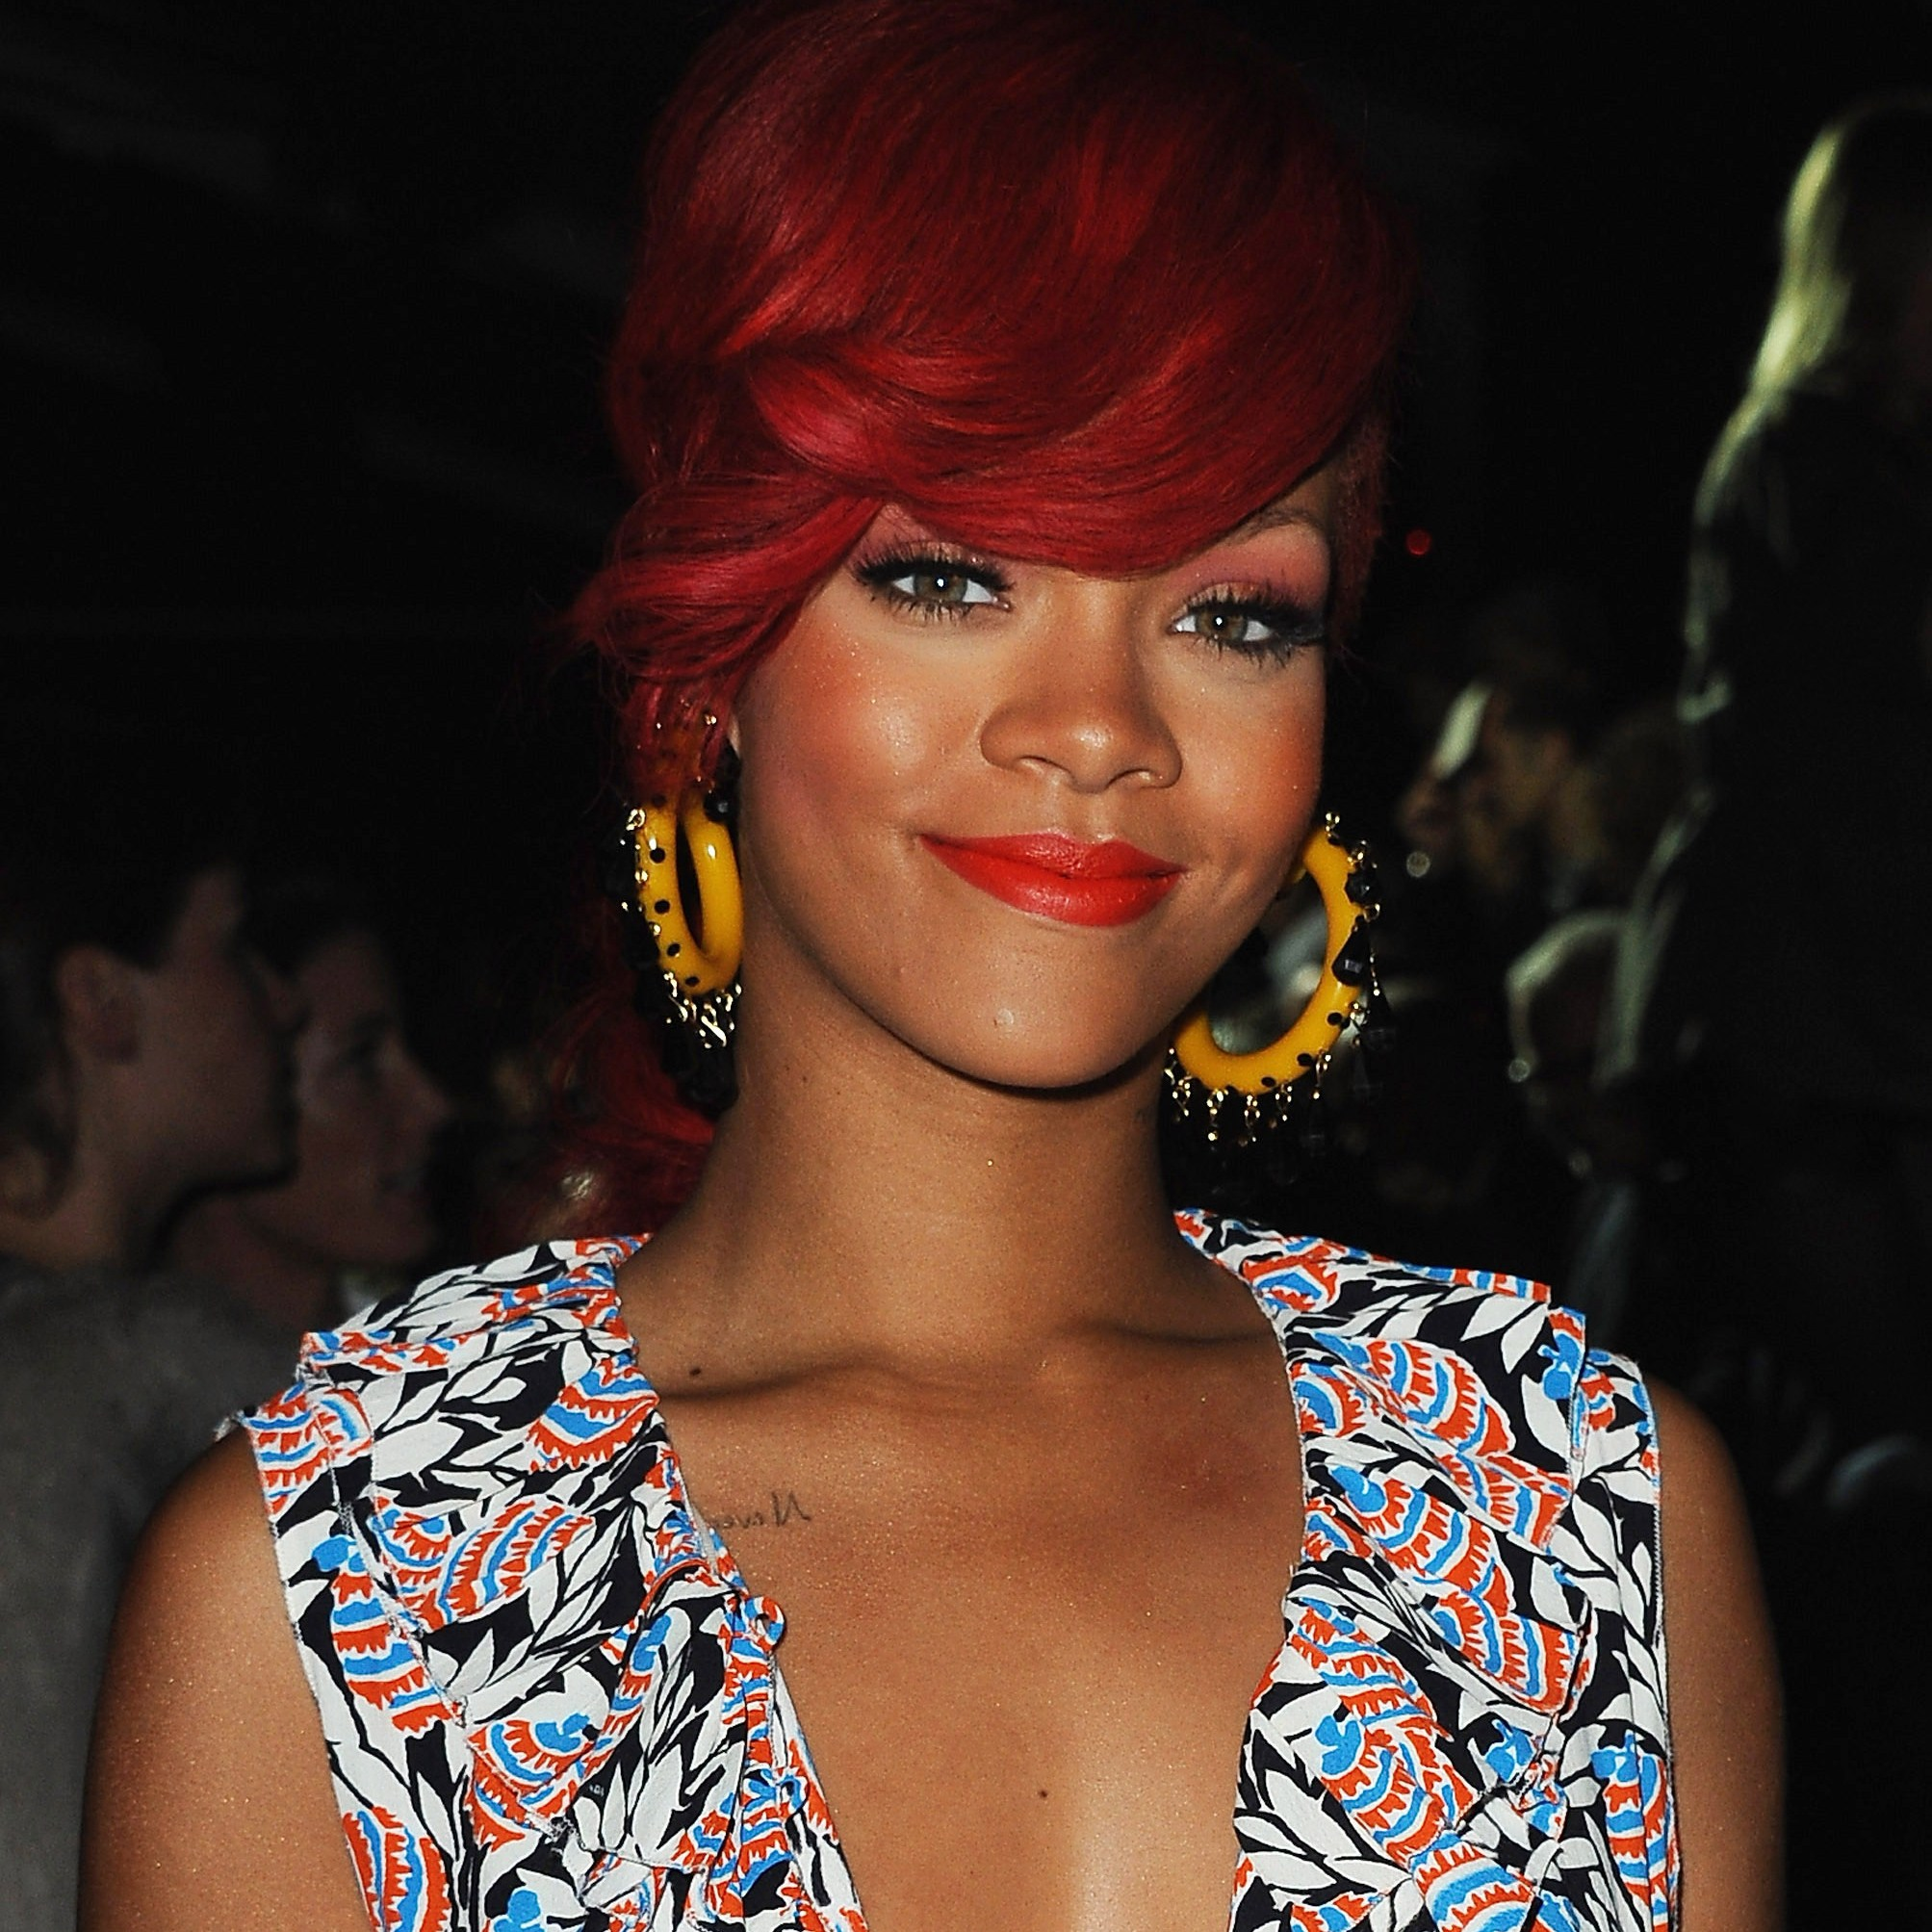 000_003_520_rihannaatten_dominique_61950009